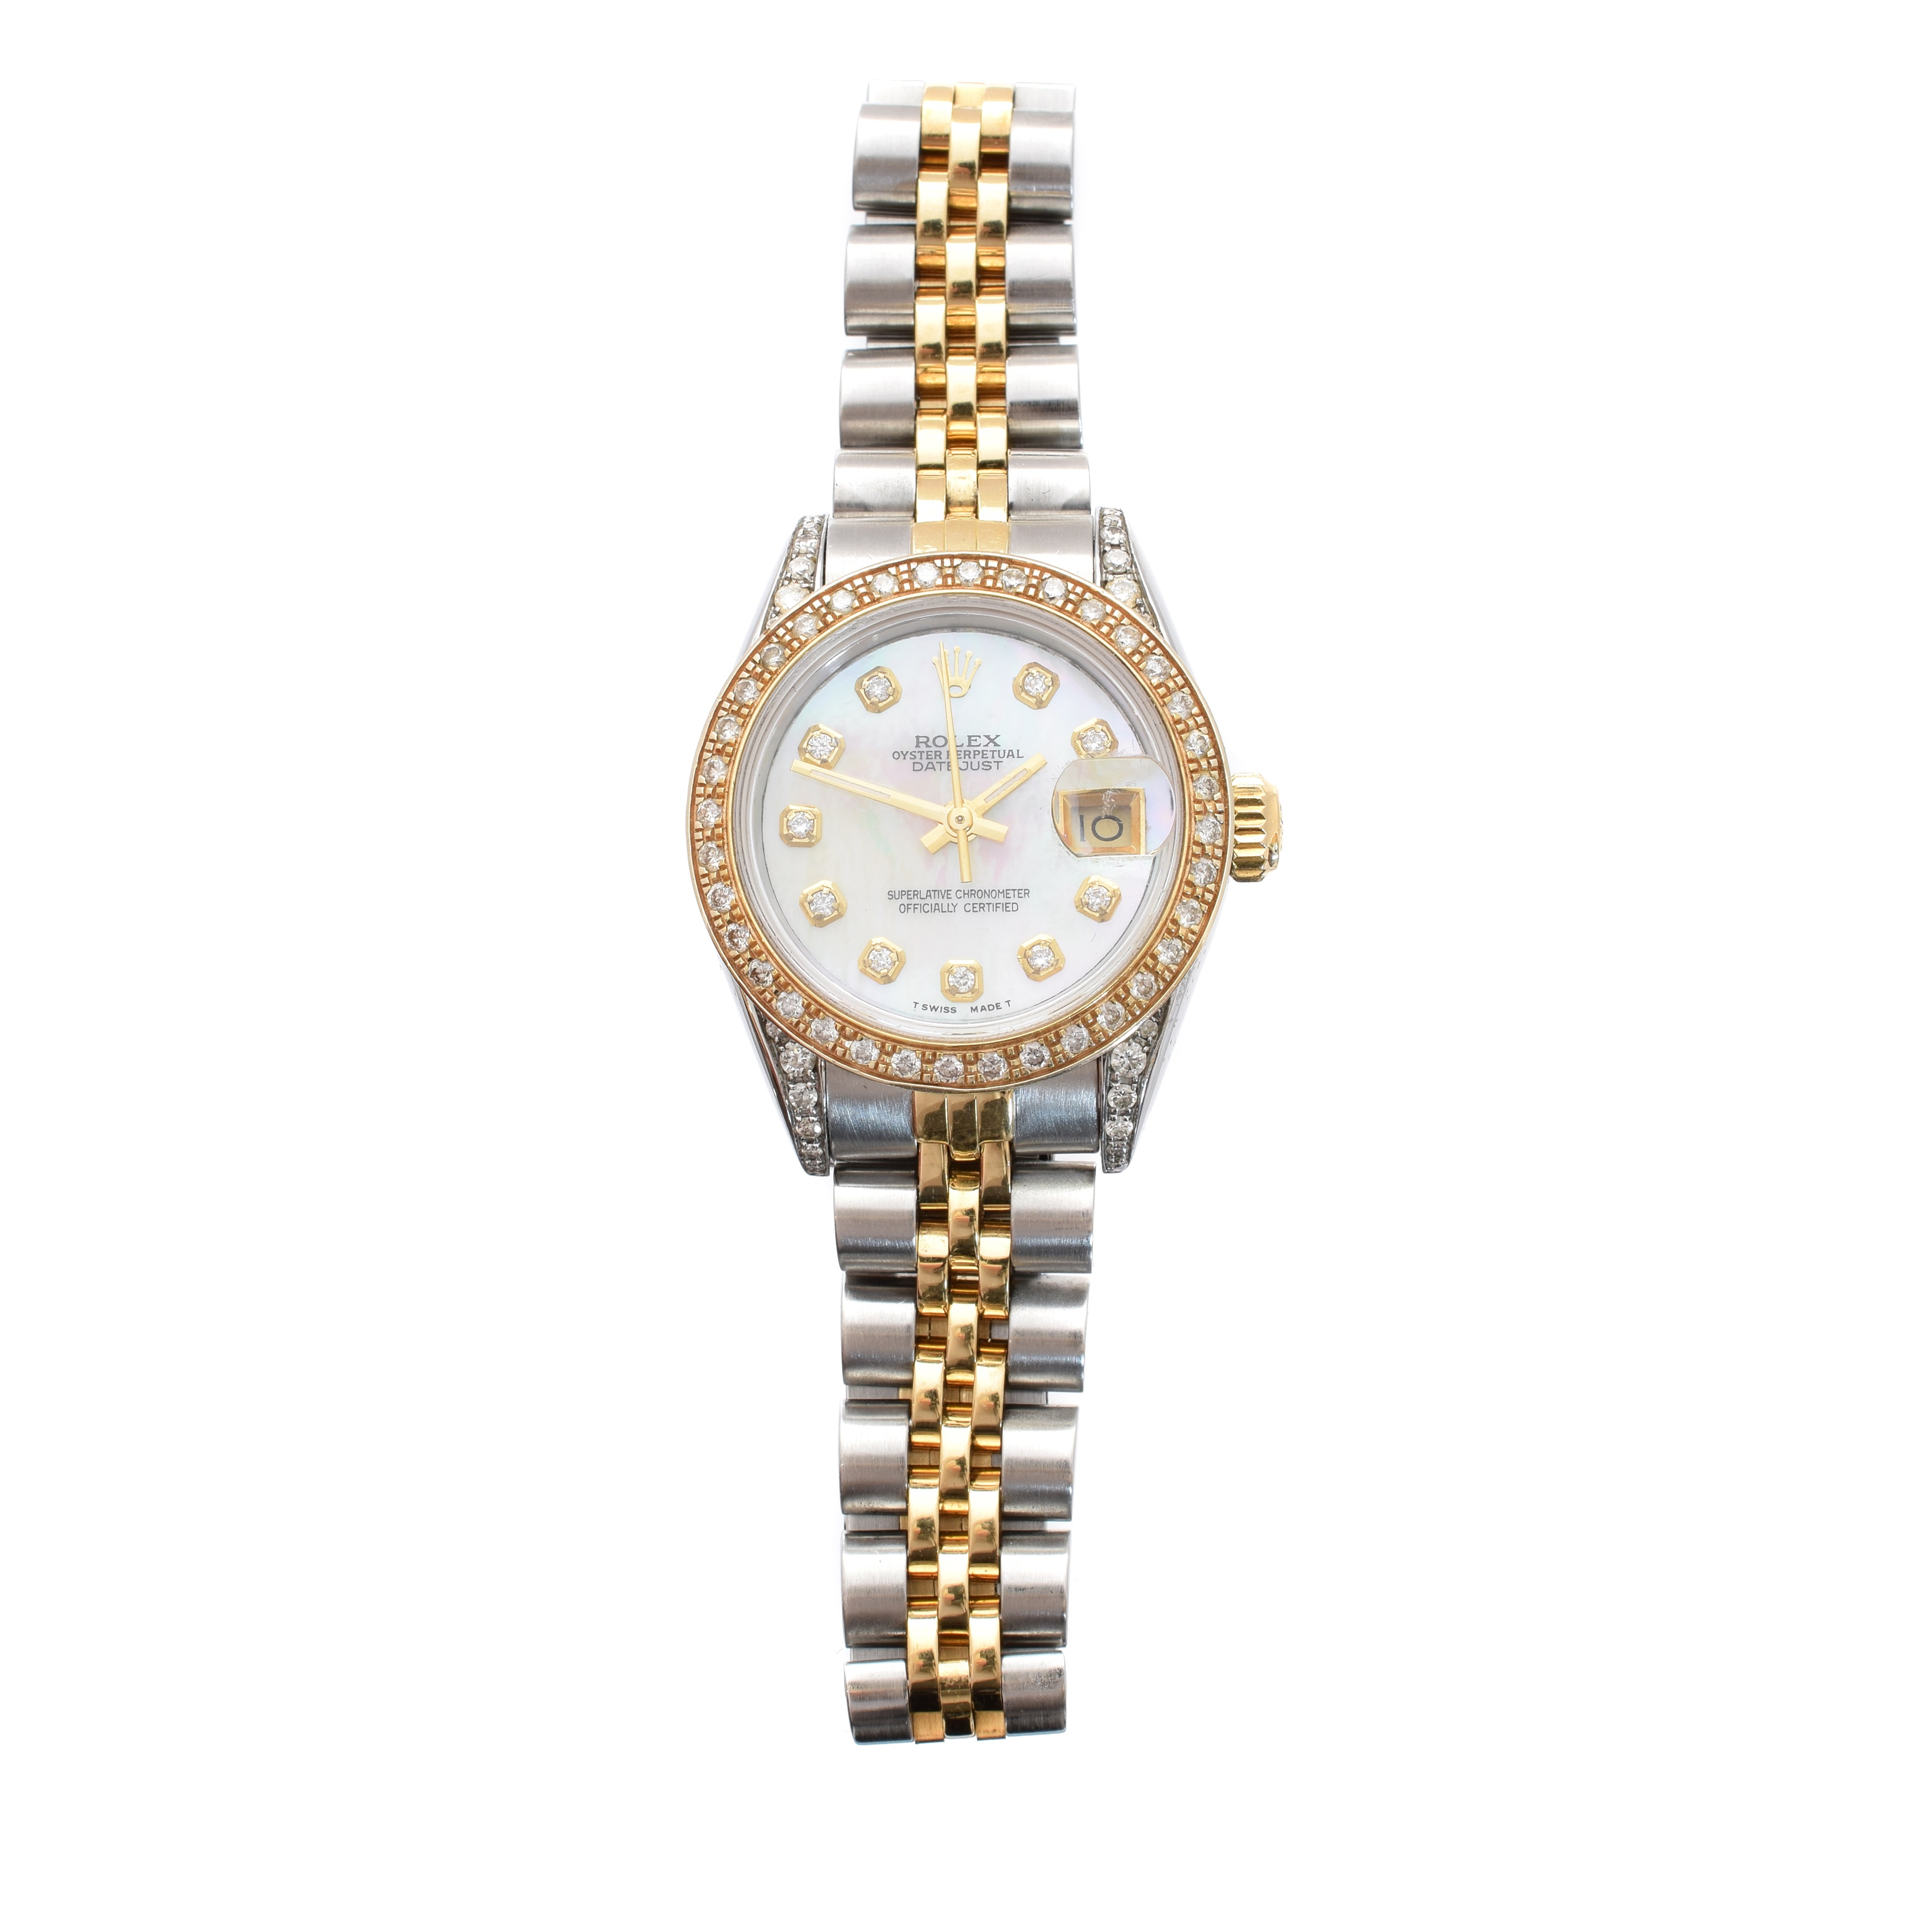 A ladies steel and gold Rolex Oyster Perpetual Datejust wristwatch, circa 1987, sold for £2,500